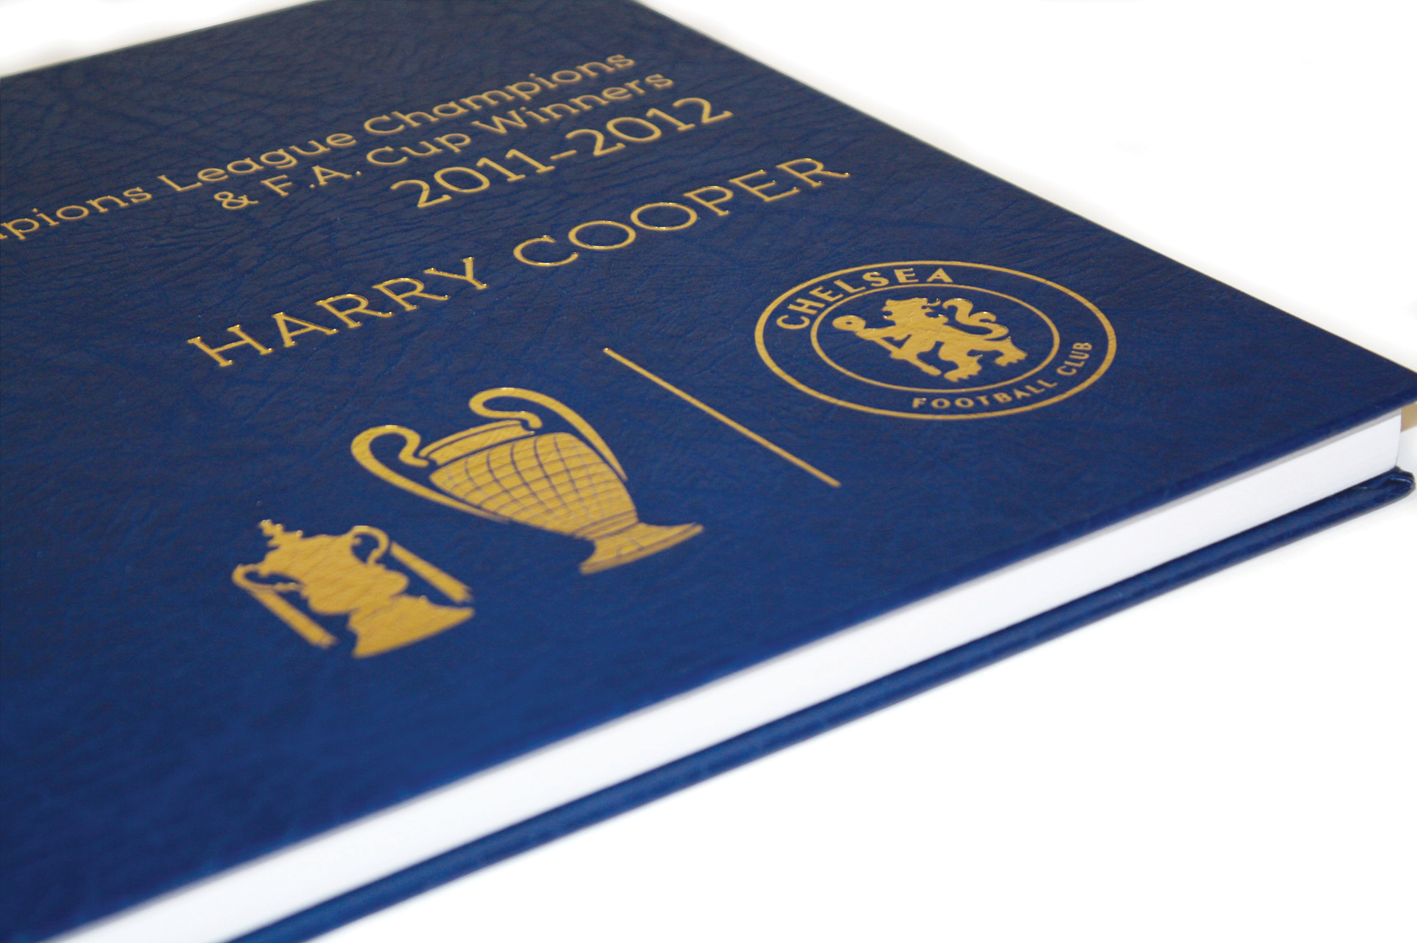 Chelsea FC Champions League & F.A. Cup Winners Book